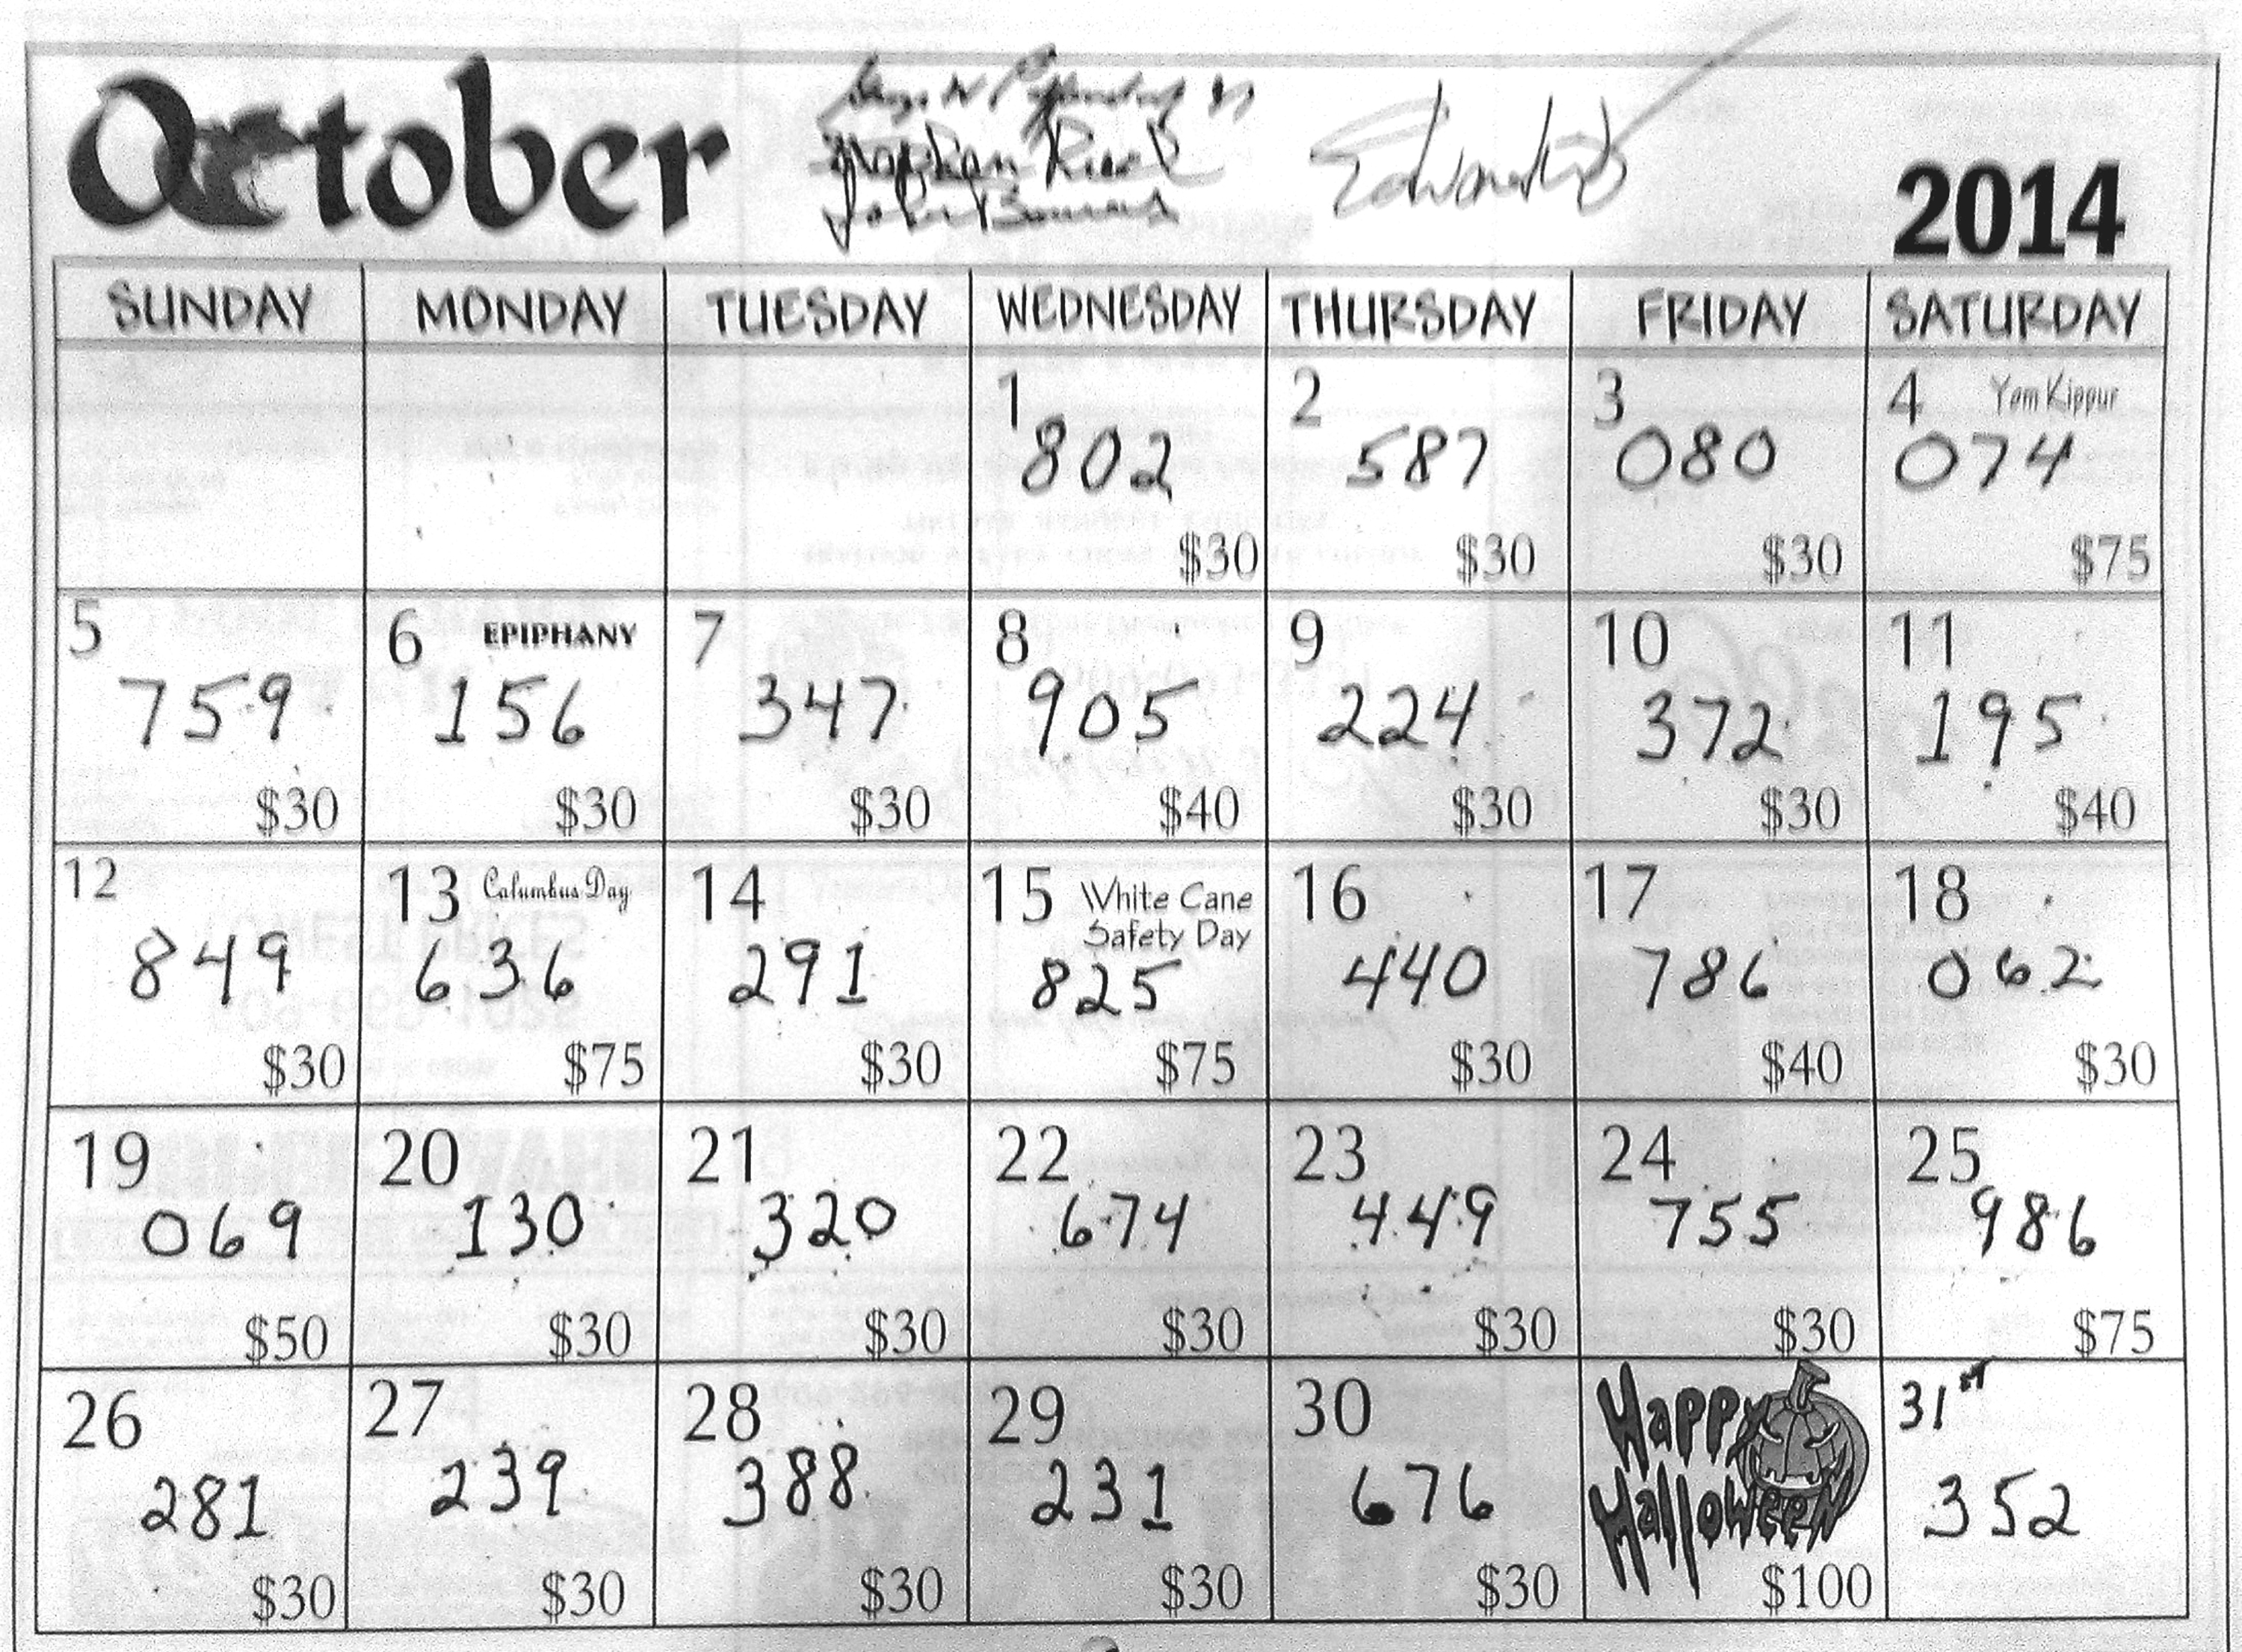 Monthly Calendar Raffle : Monthly calendar raffle results « mariners lodge